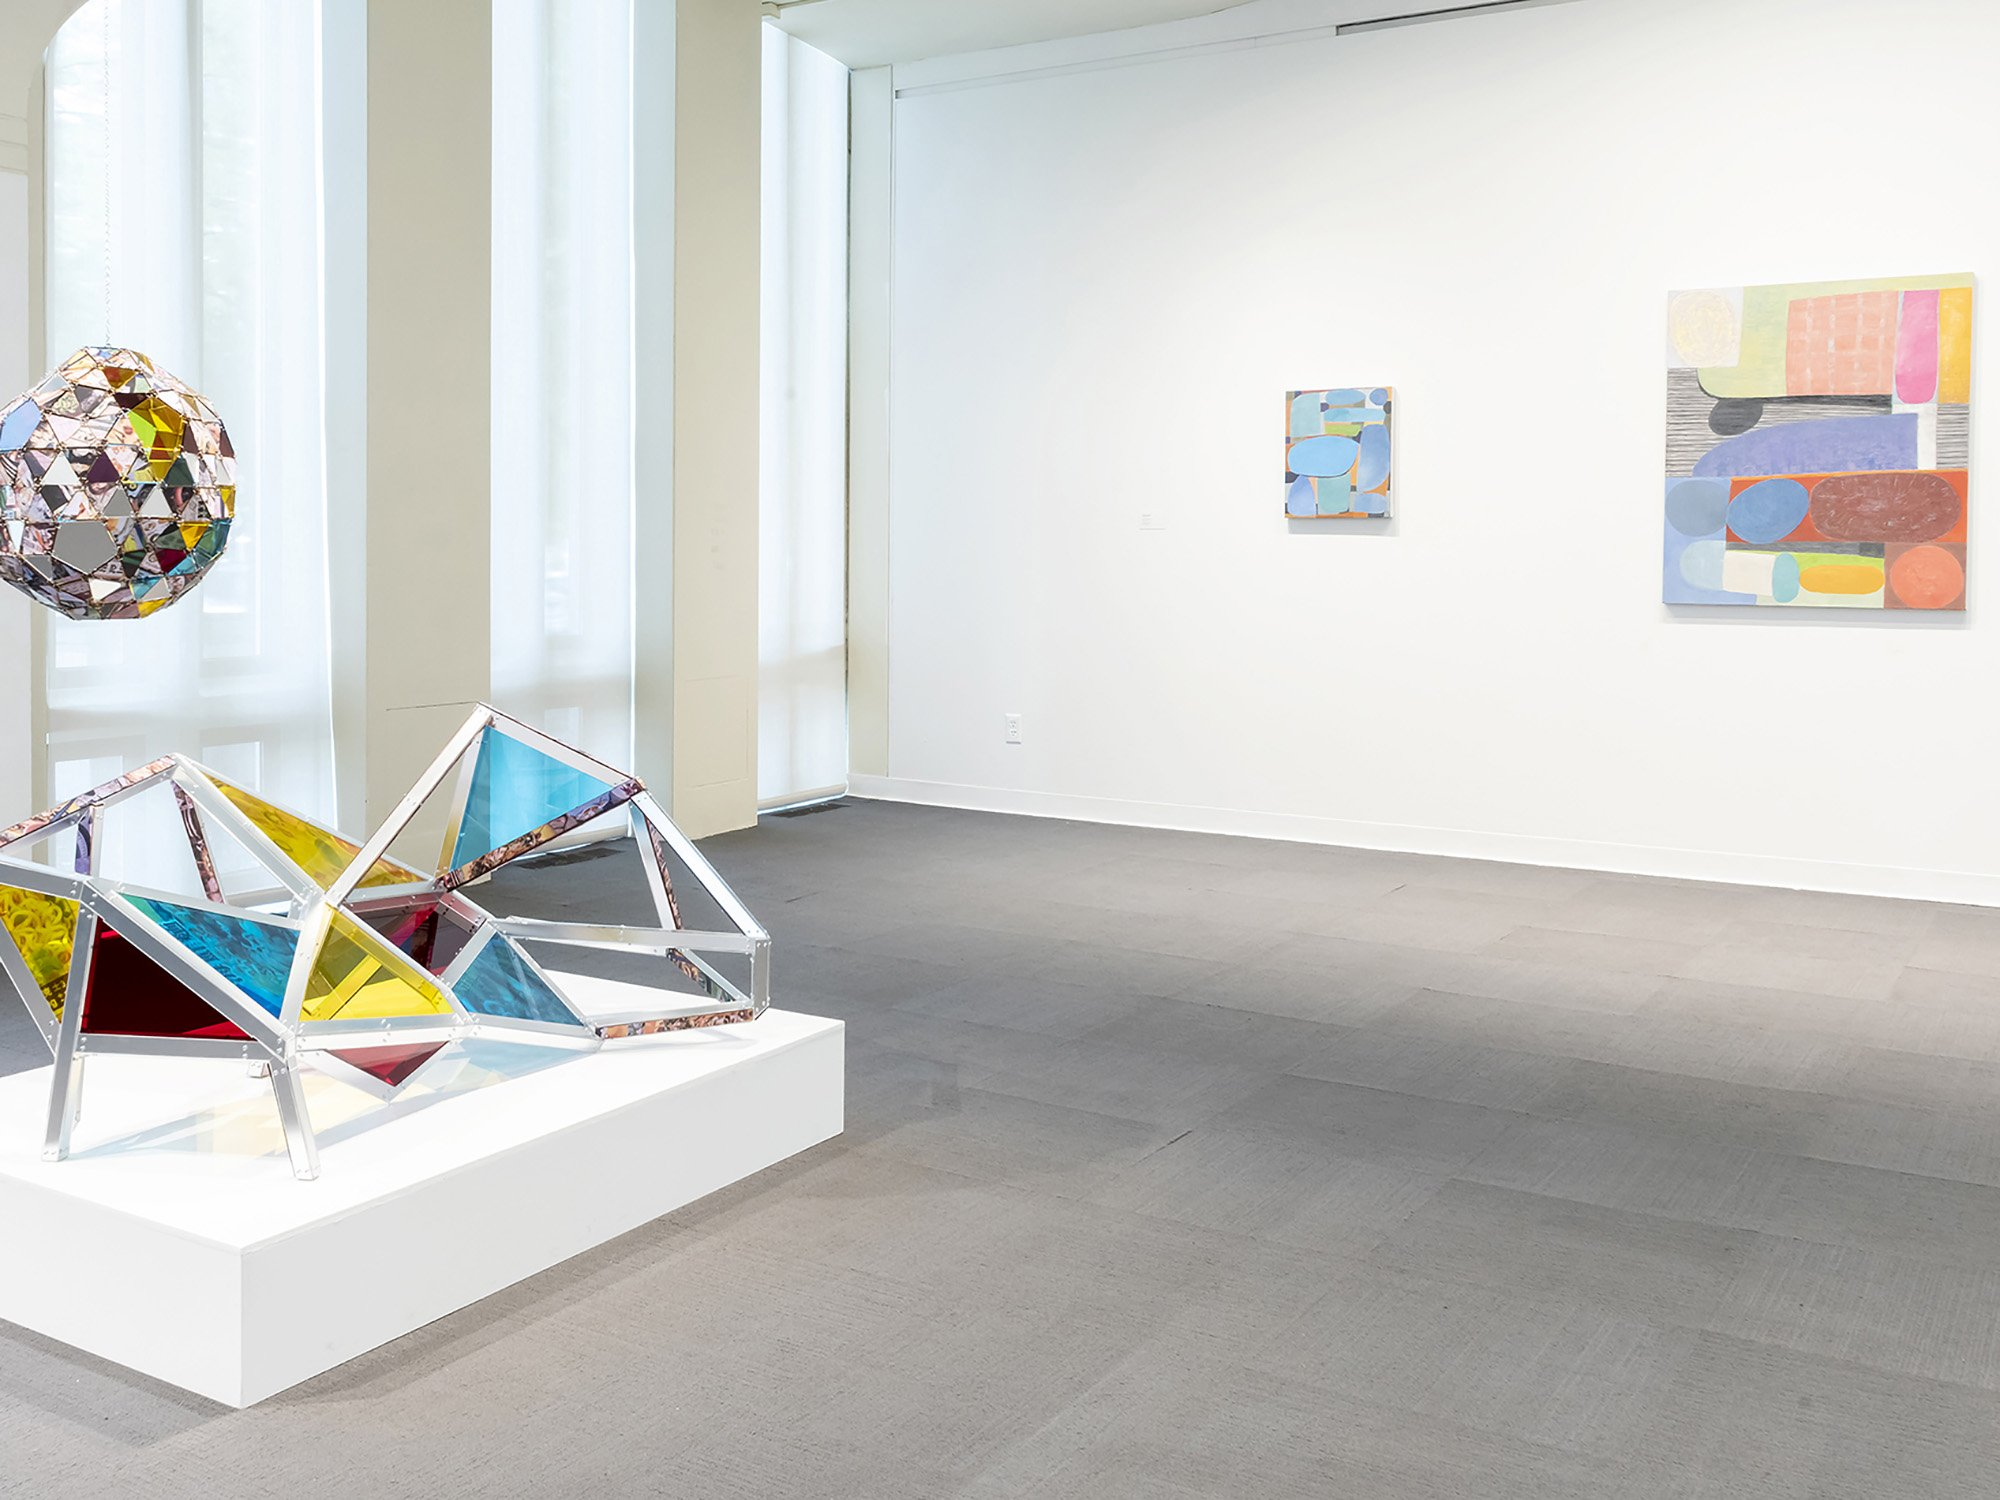 2018 Artists of the Mohawk Hudson Region, installation view